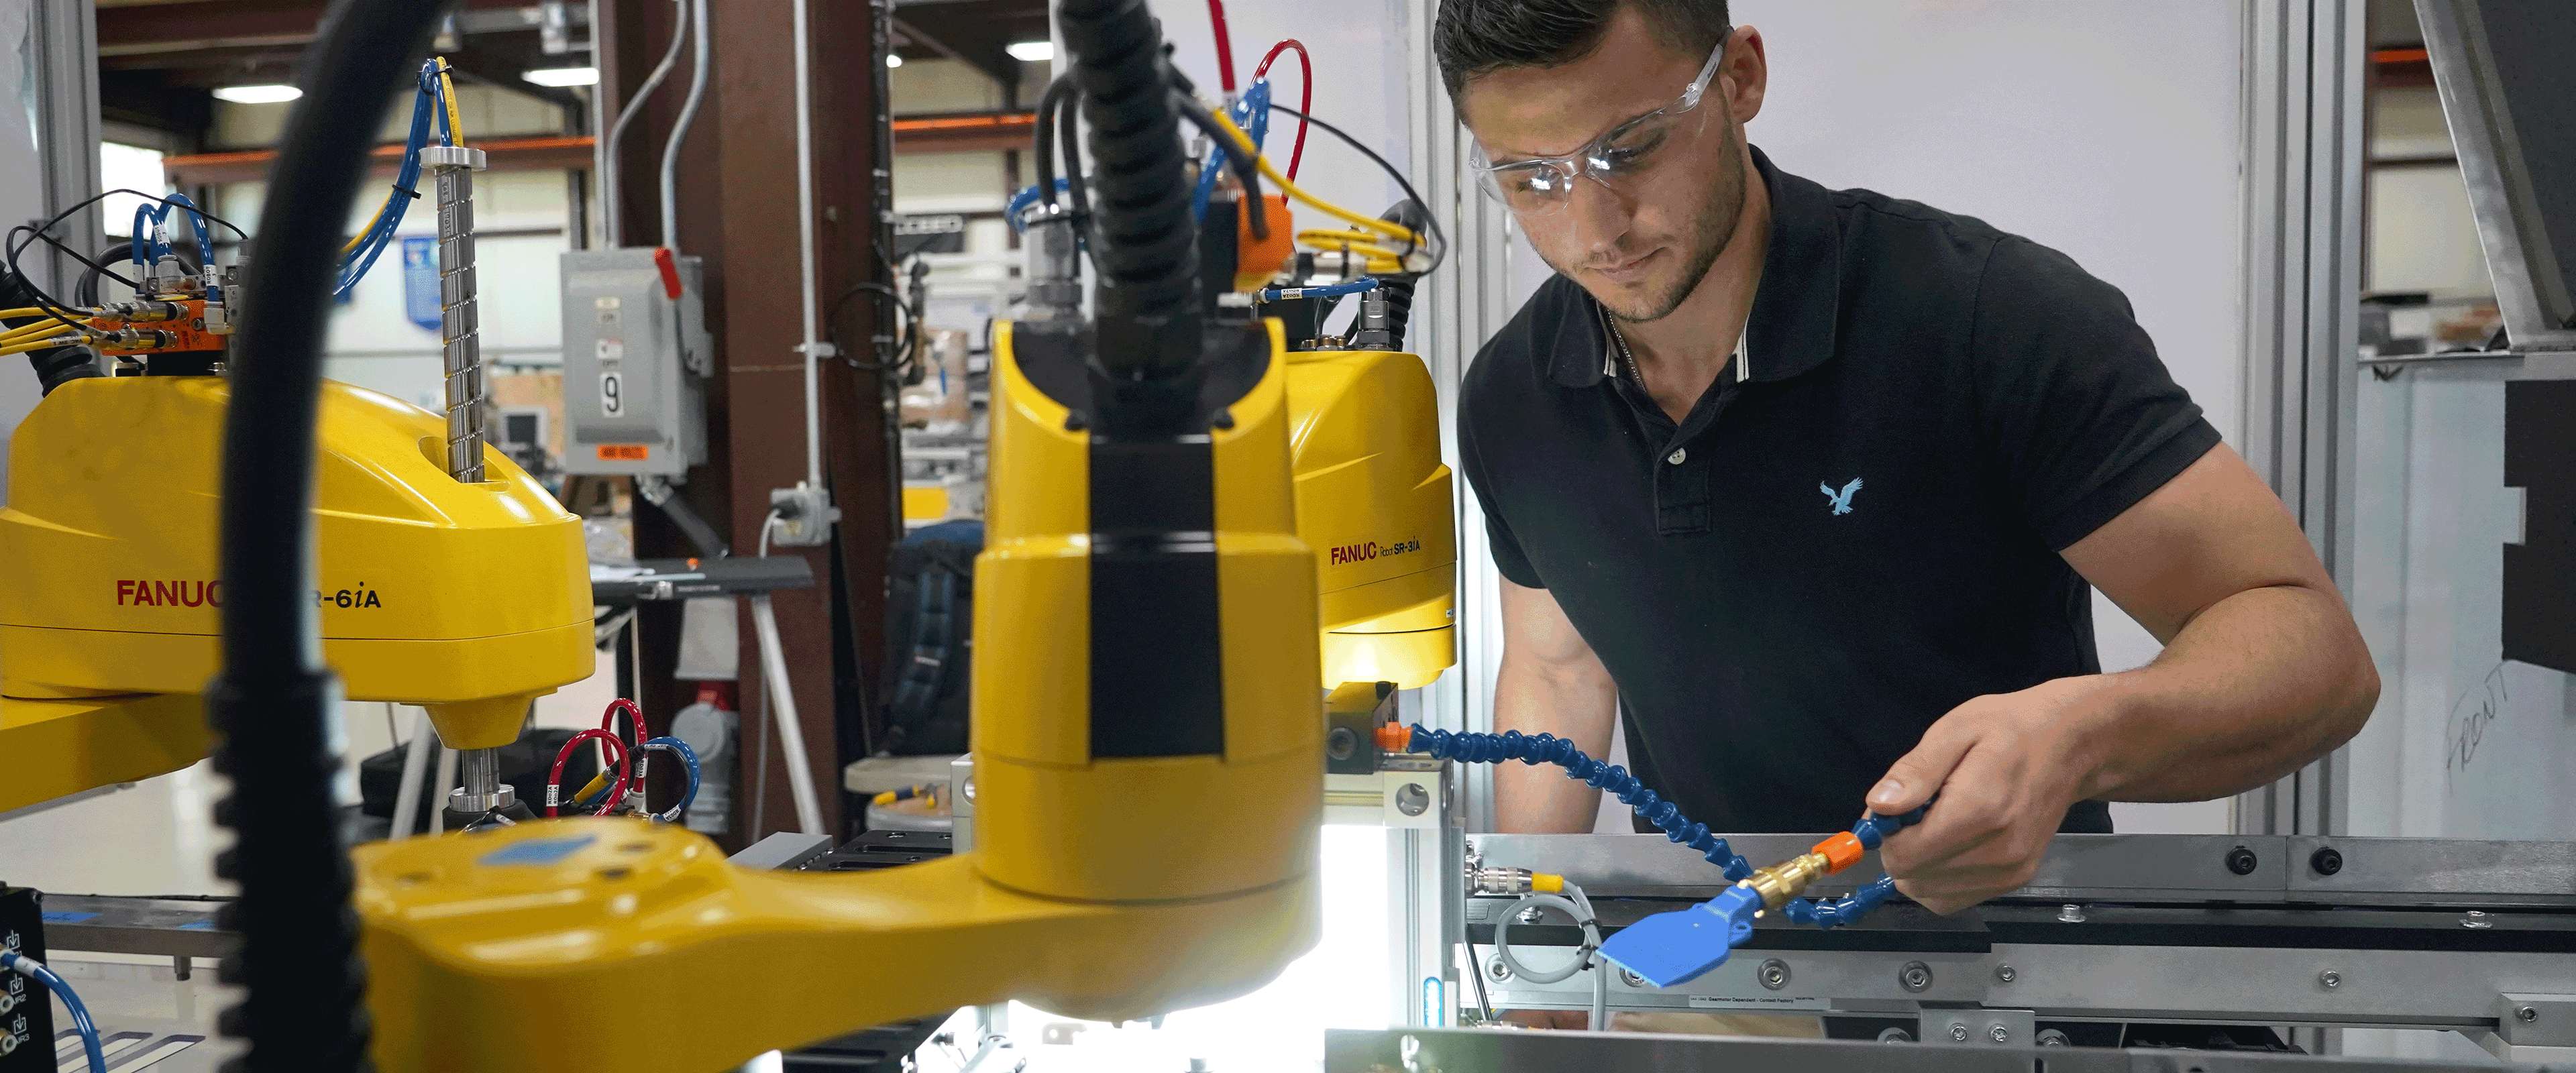 Page banner image: a student intern works with large technology machines